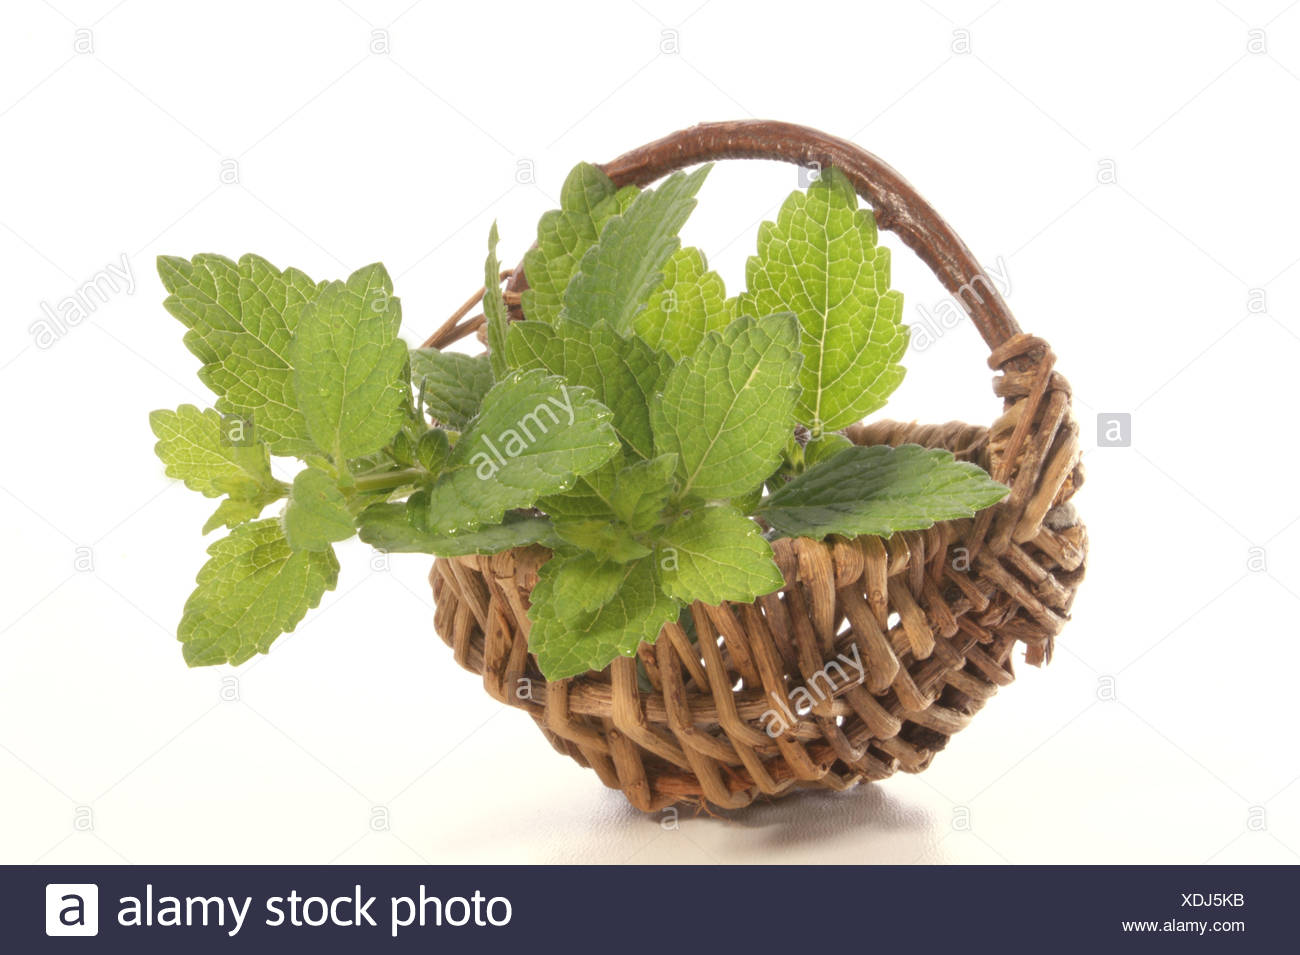 lemon balm perfect as spice in every kitchen - Stock Image